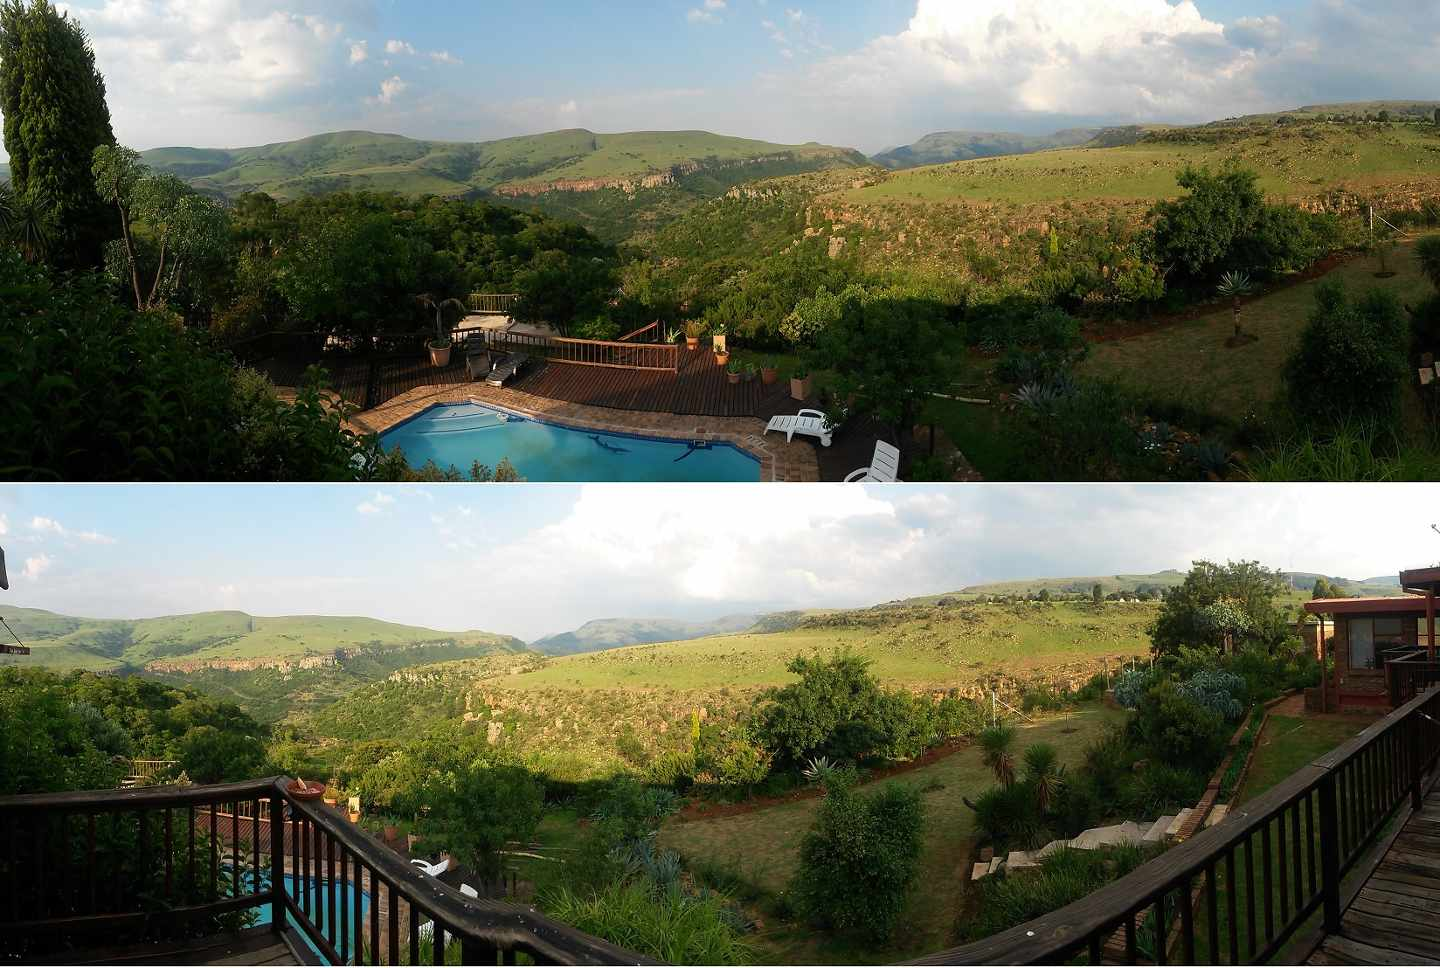 Acra Retreat Mountain View Lodge Waterval Boven